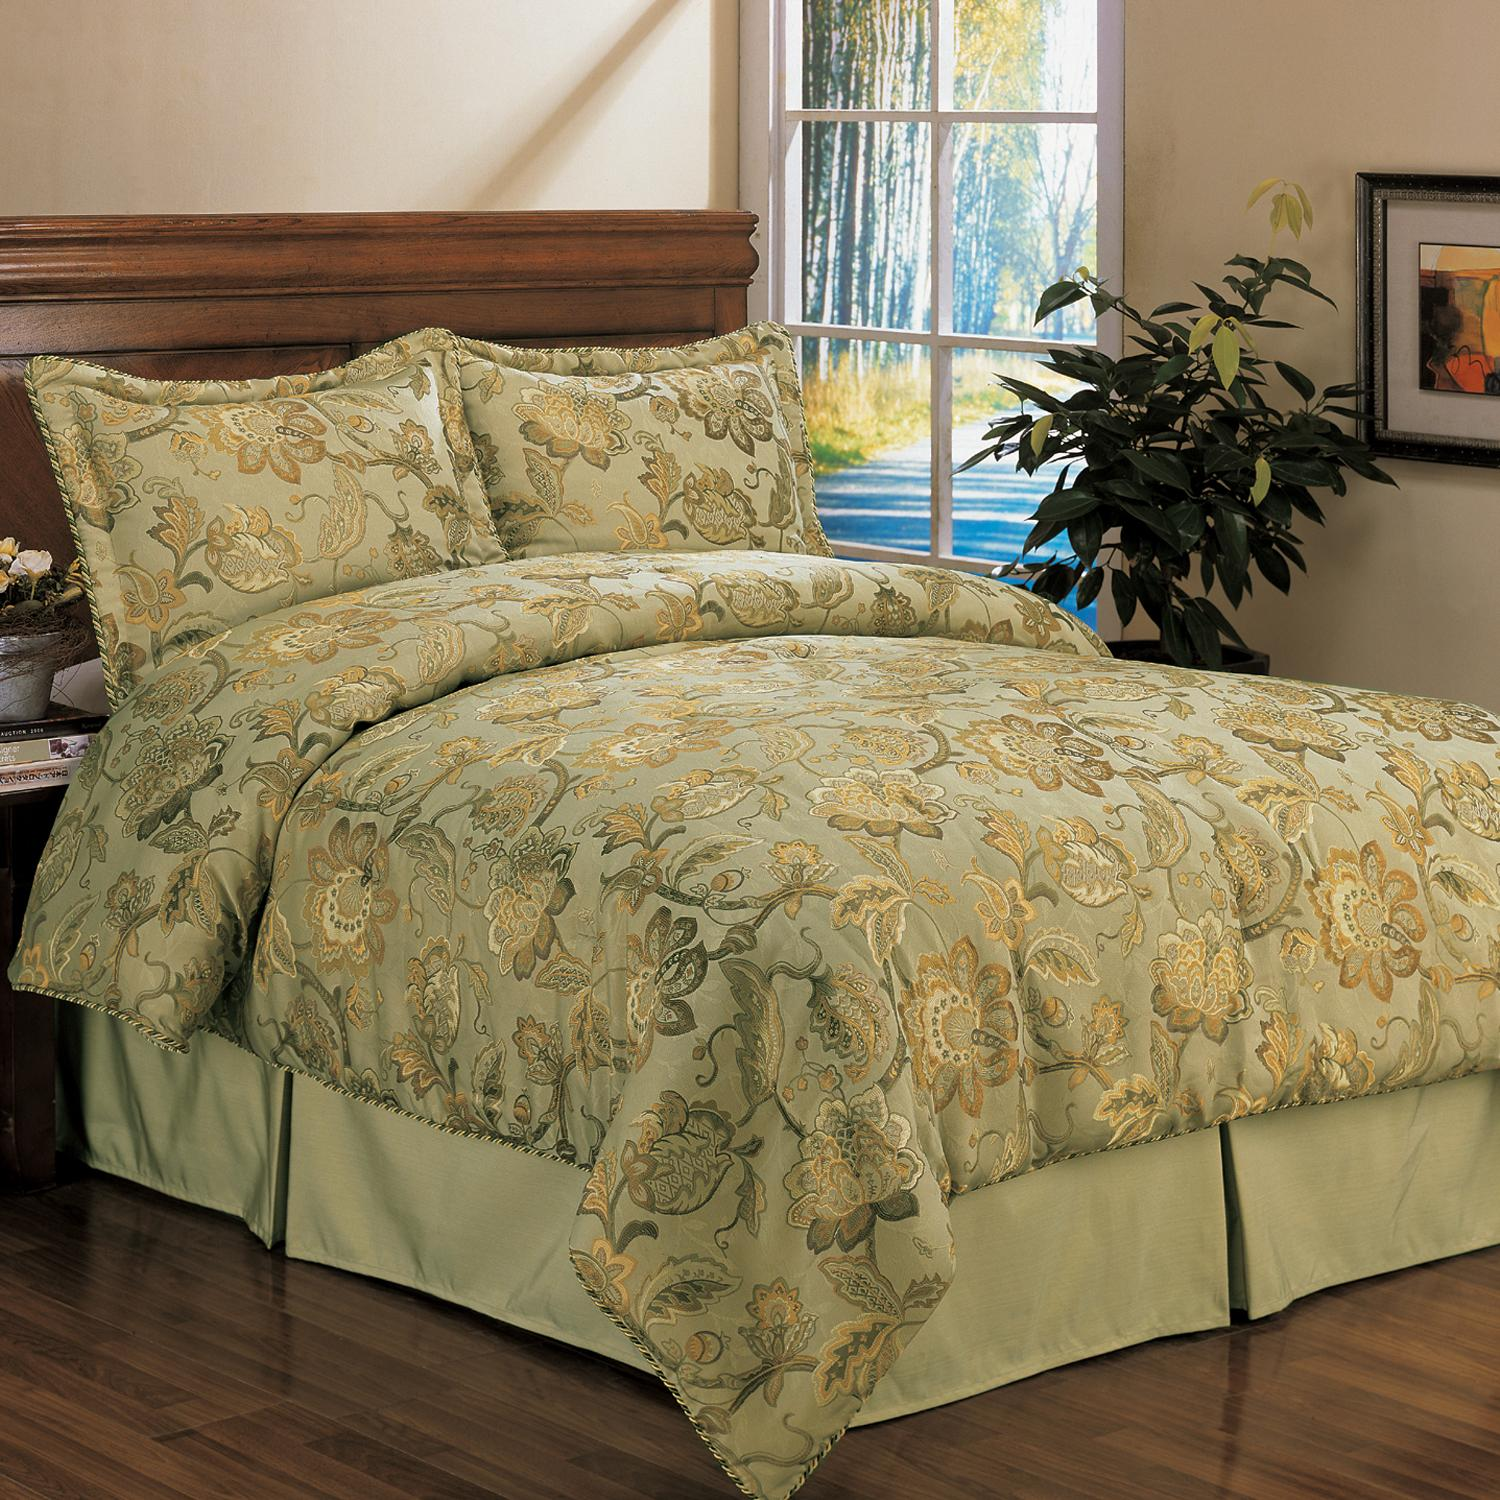 Shop Serenade Spring King Size 4 Piece Comforter Set